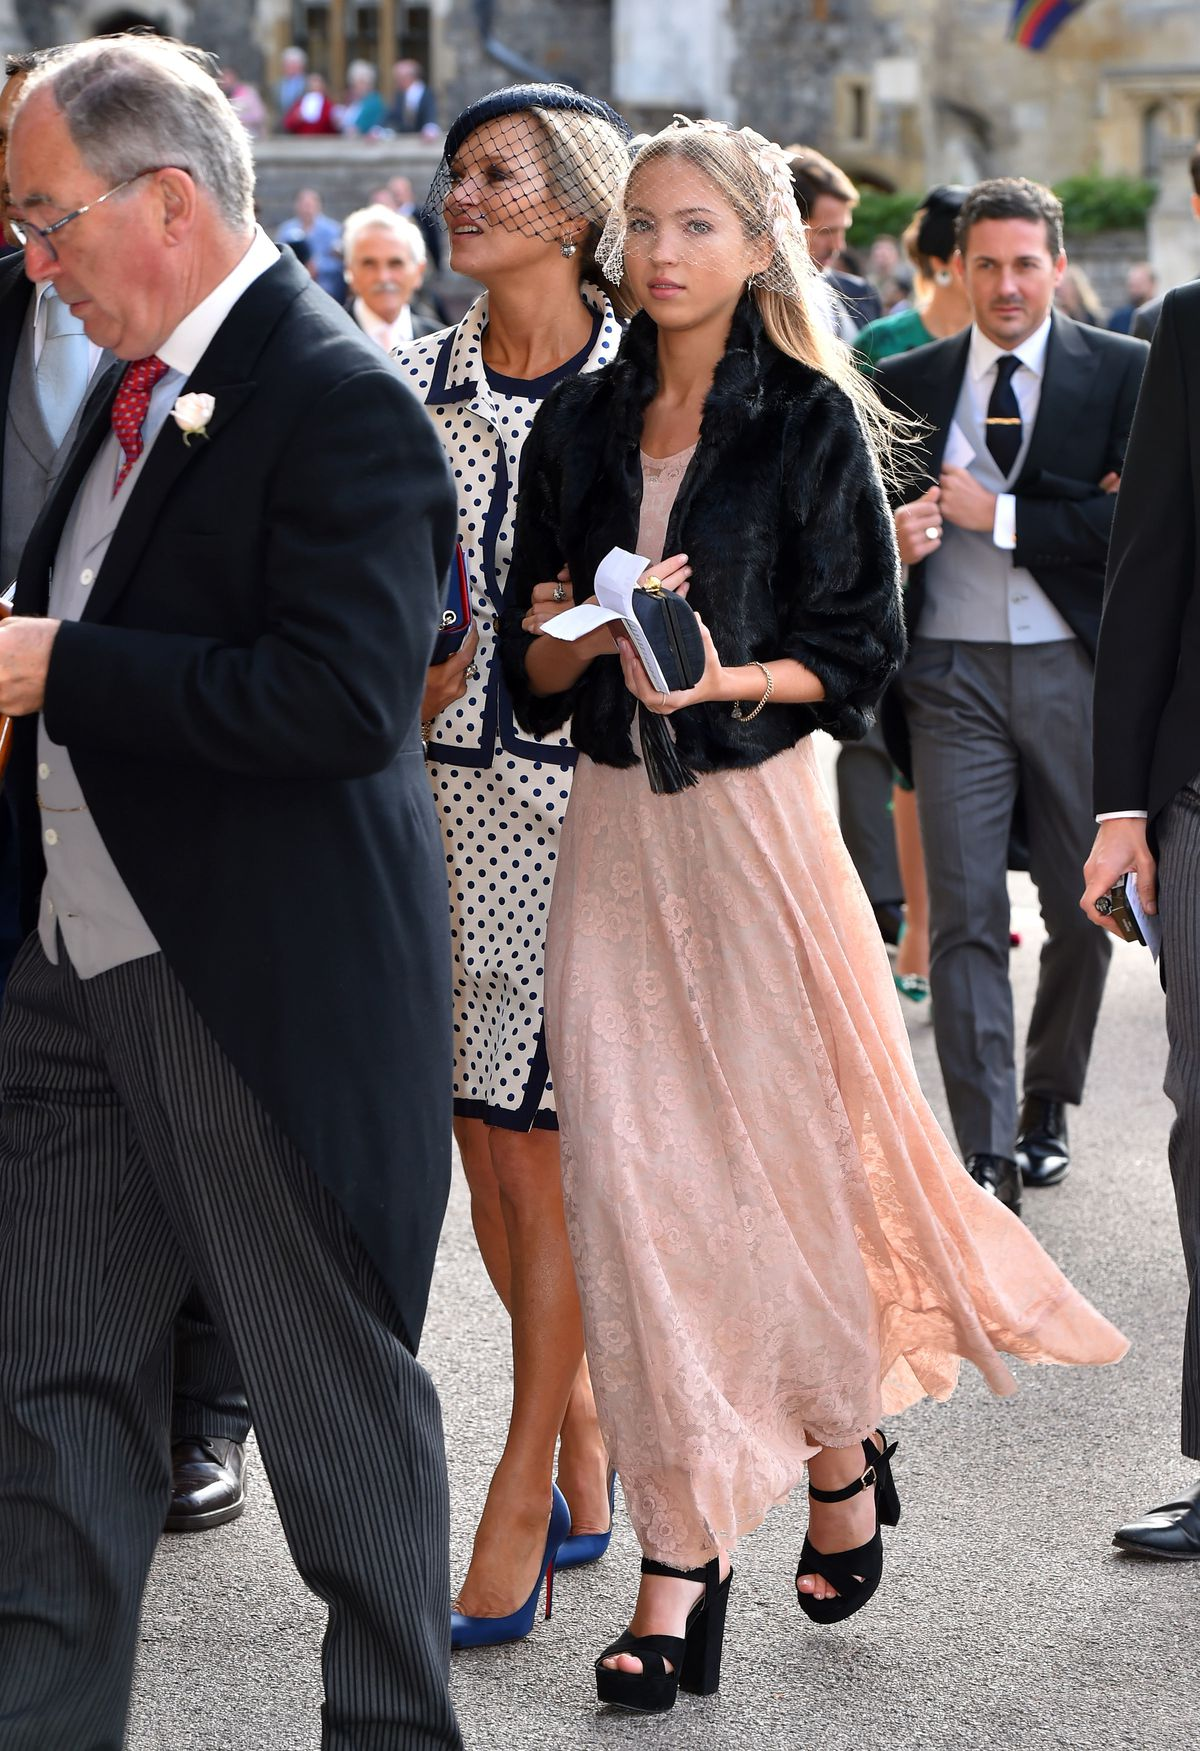 Lila Moss wears a long pink dress, and Kate Moss wears a polka dotted skirt suit.